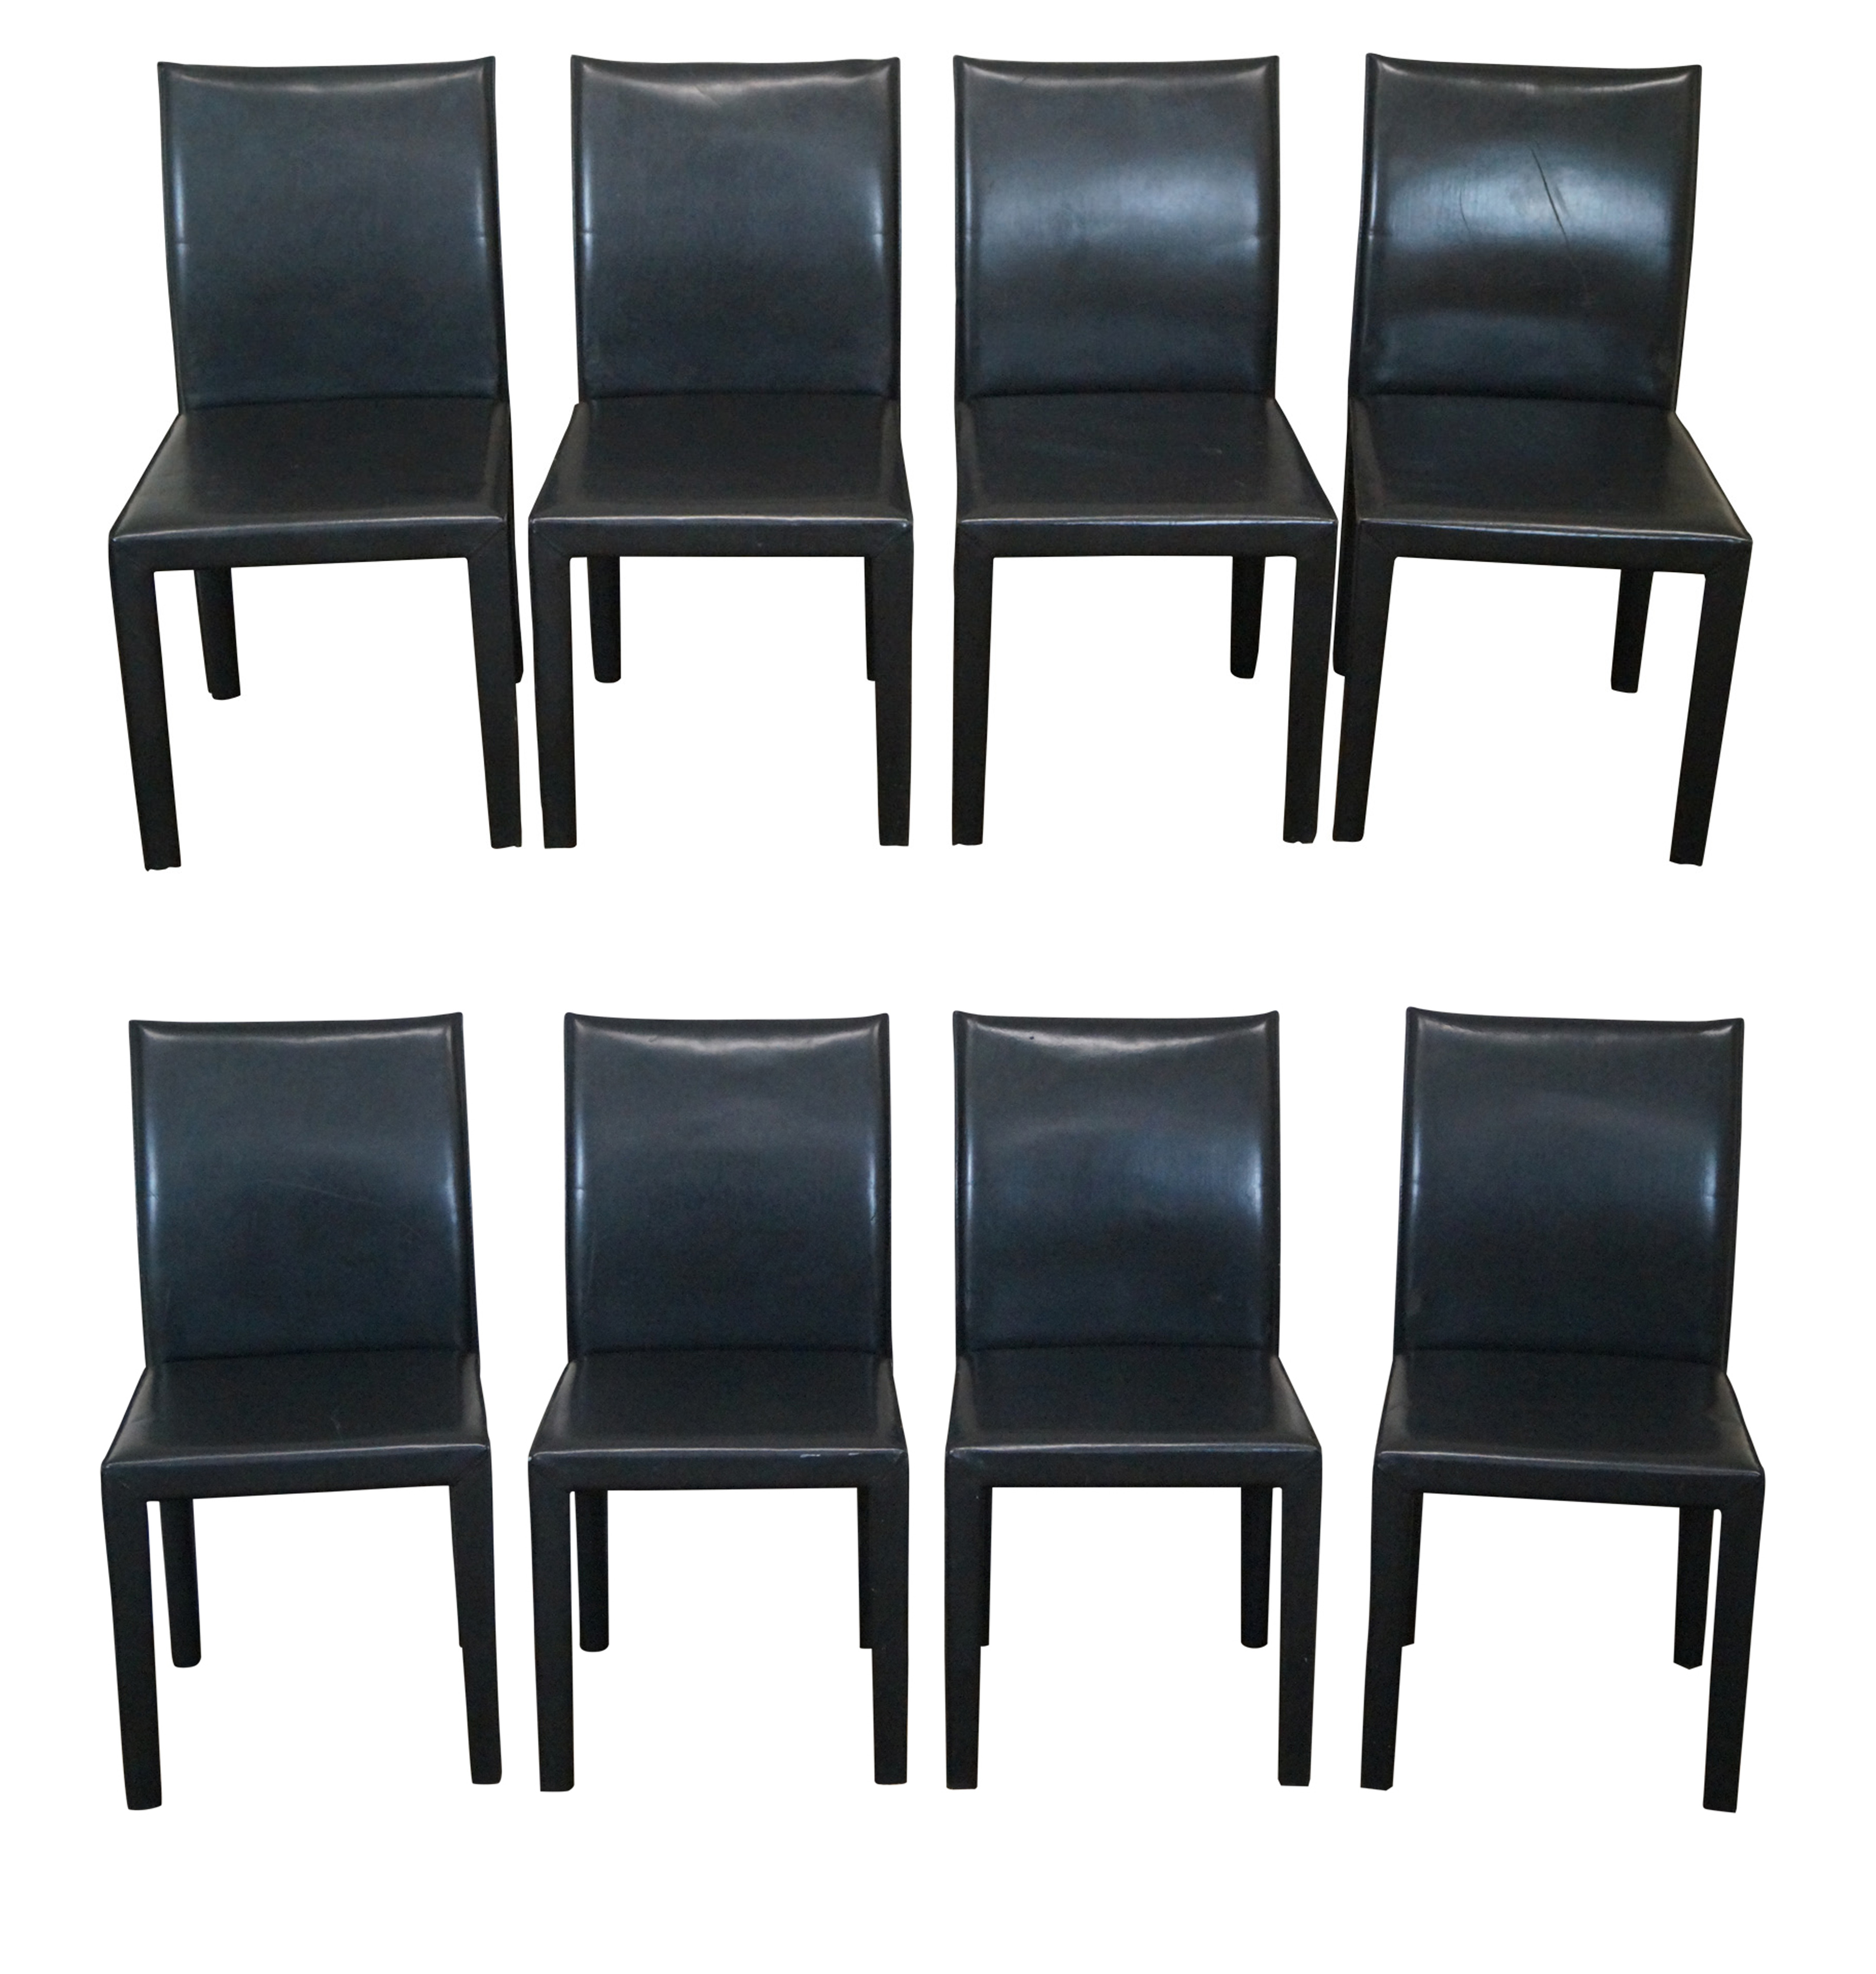 Leather Mondo Dining Chairs By Maria Yee Set Of 8 Chairish